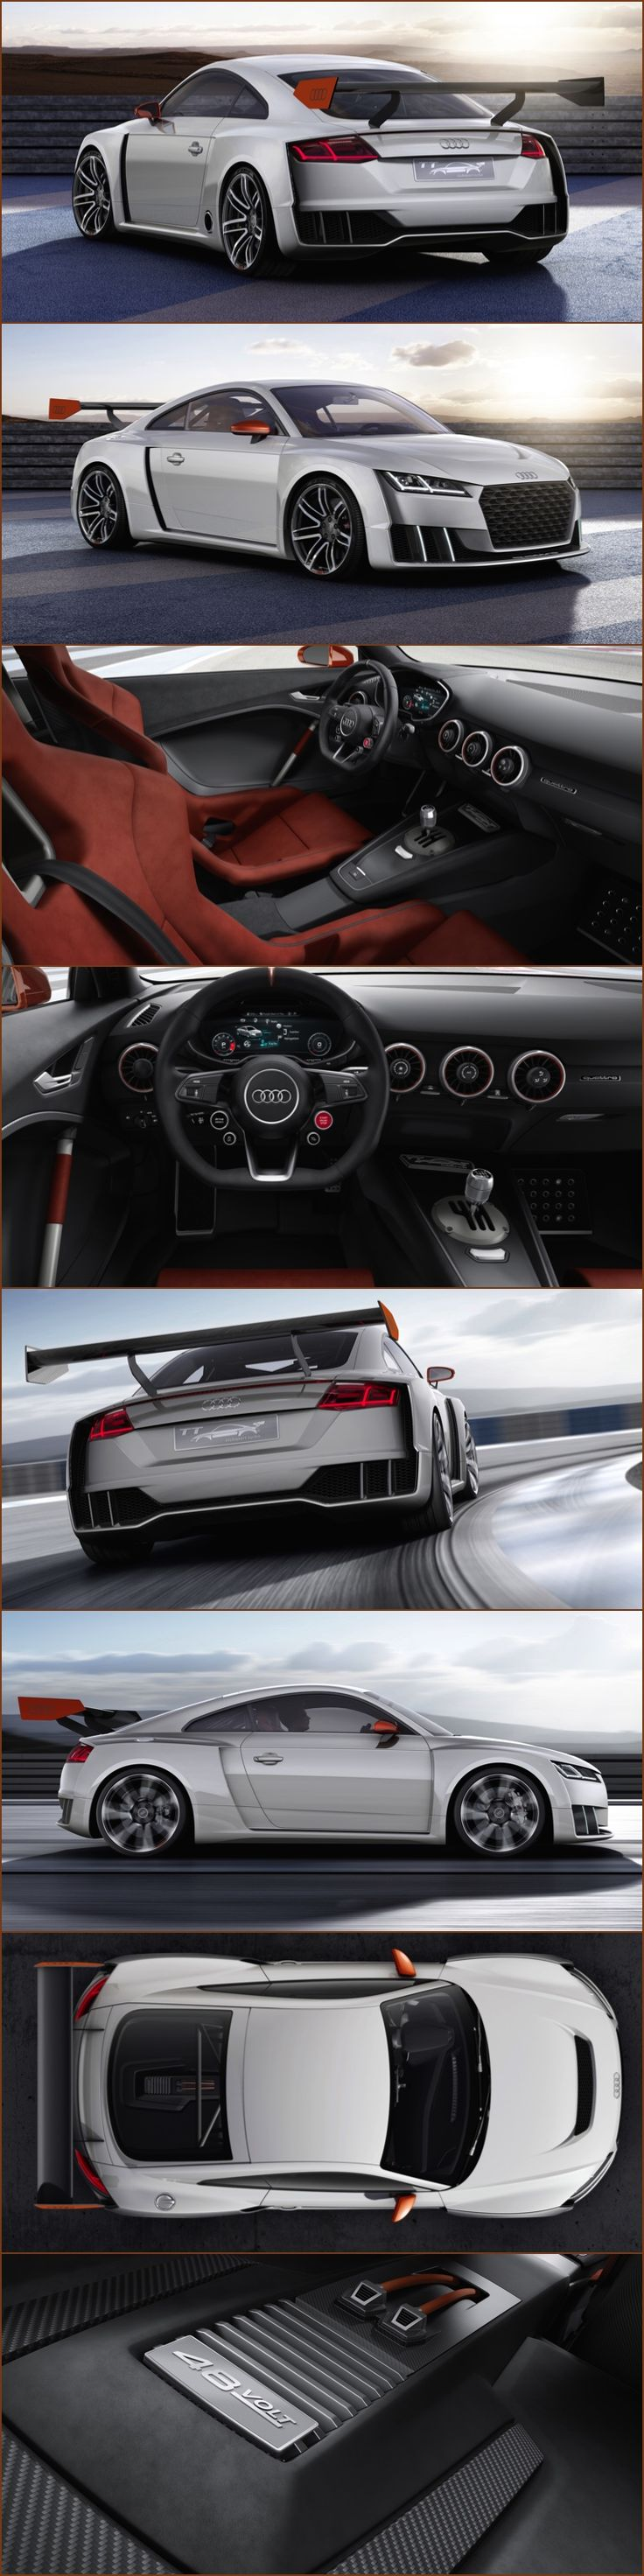 The 600PS Audi TT Concept shows a taste of the future of turbo power. First application of electric biturbo propulsion in a TFSI engine and 48v system power. 600PS and 650Nm, 0-62mph in 3.6 seconds and 192mph top speed. Five-cylinder 2.5 TFSI fitted with electric bi-turbo for spontaneous response and torque boost of up to 200Nm quattro all-wheel drive, adjustable coilover suspension and manual transmission with open shift gate, 48-volt electrical system fitted. #AUDI #TT #Turbo #Conceptcars